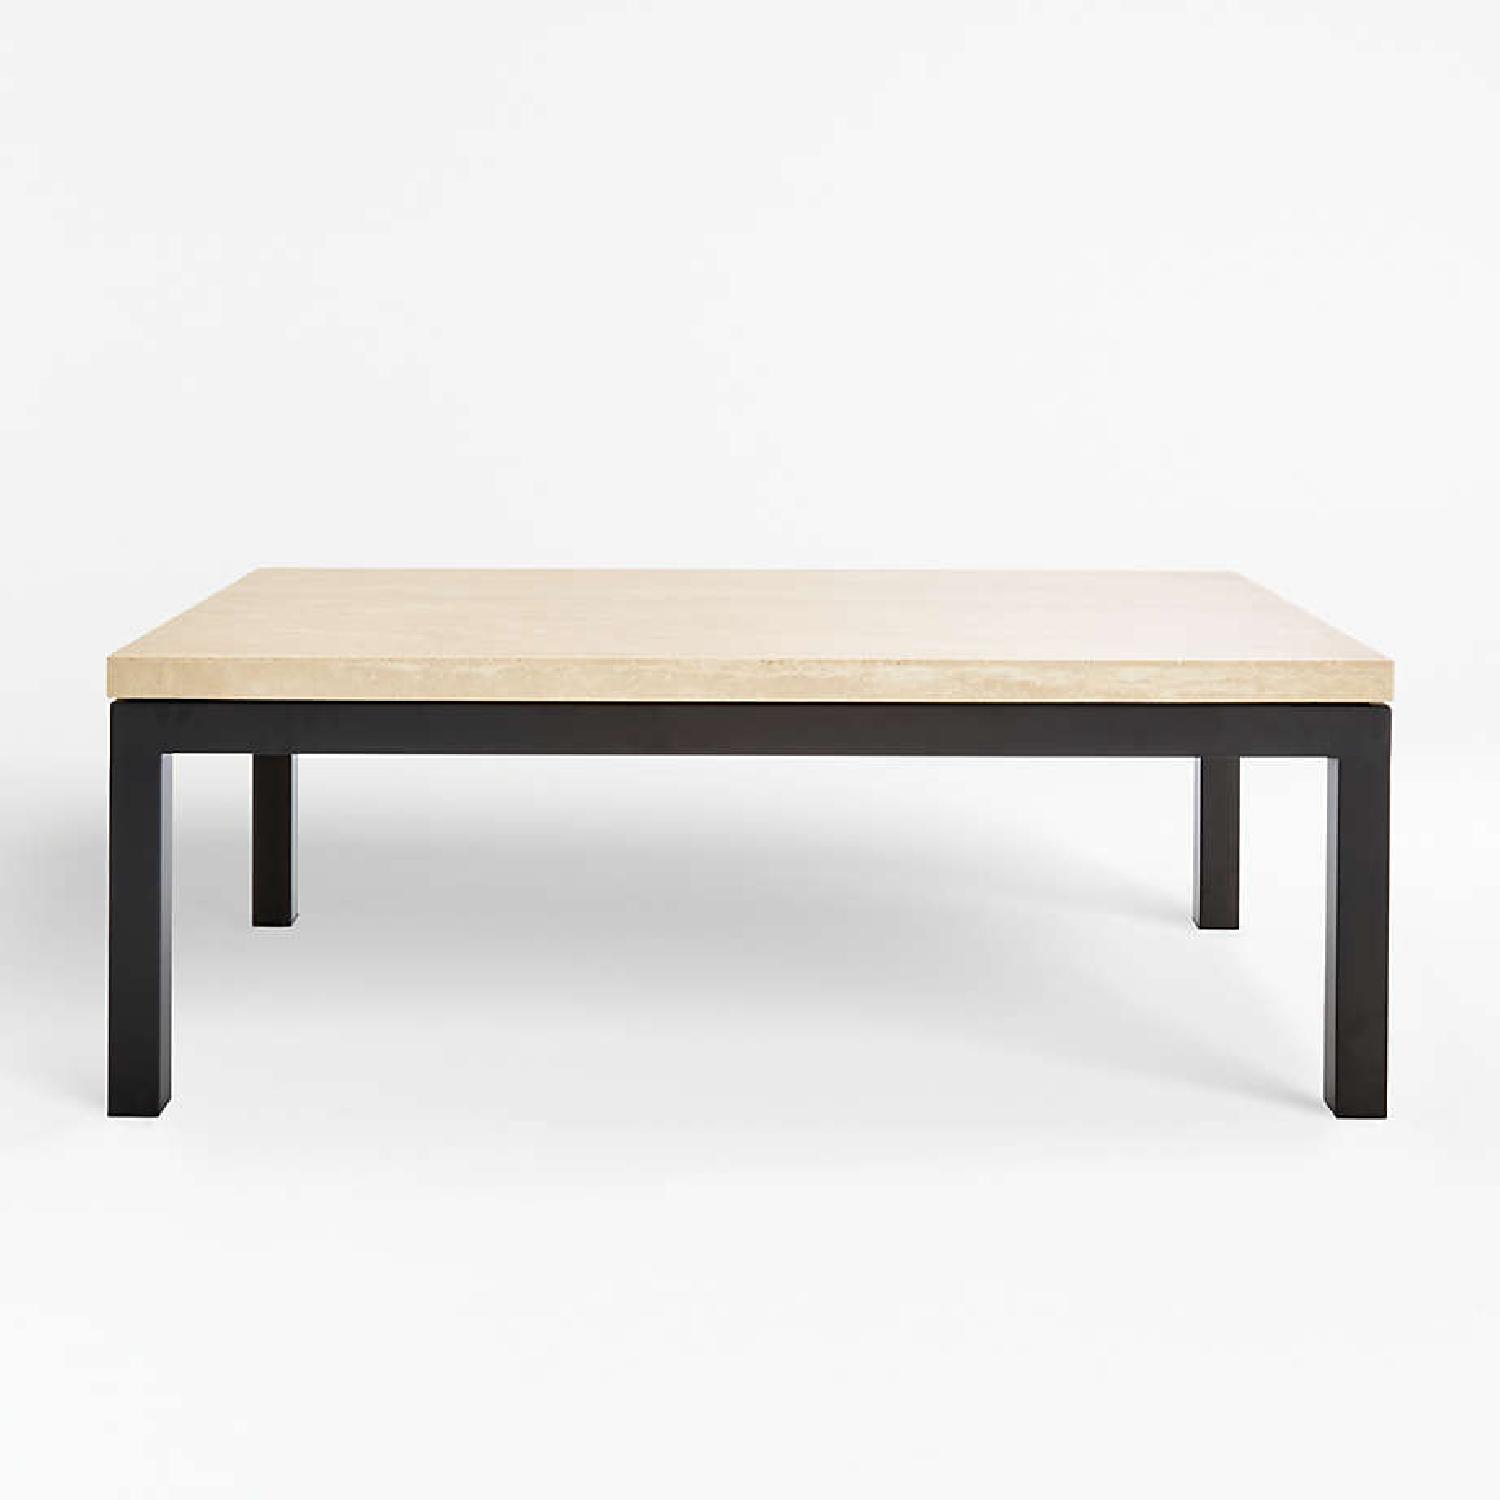 Crate & Barrel Parsons Travertine Coffee Table - image-4